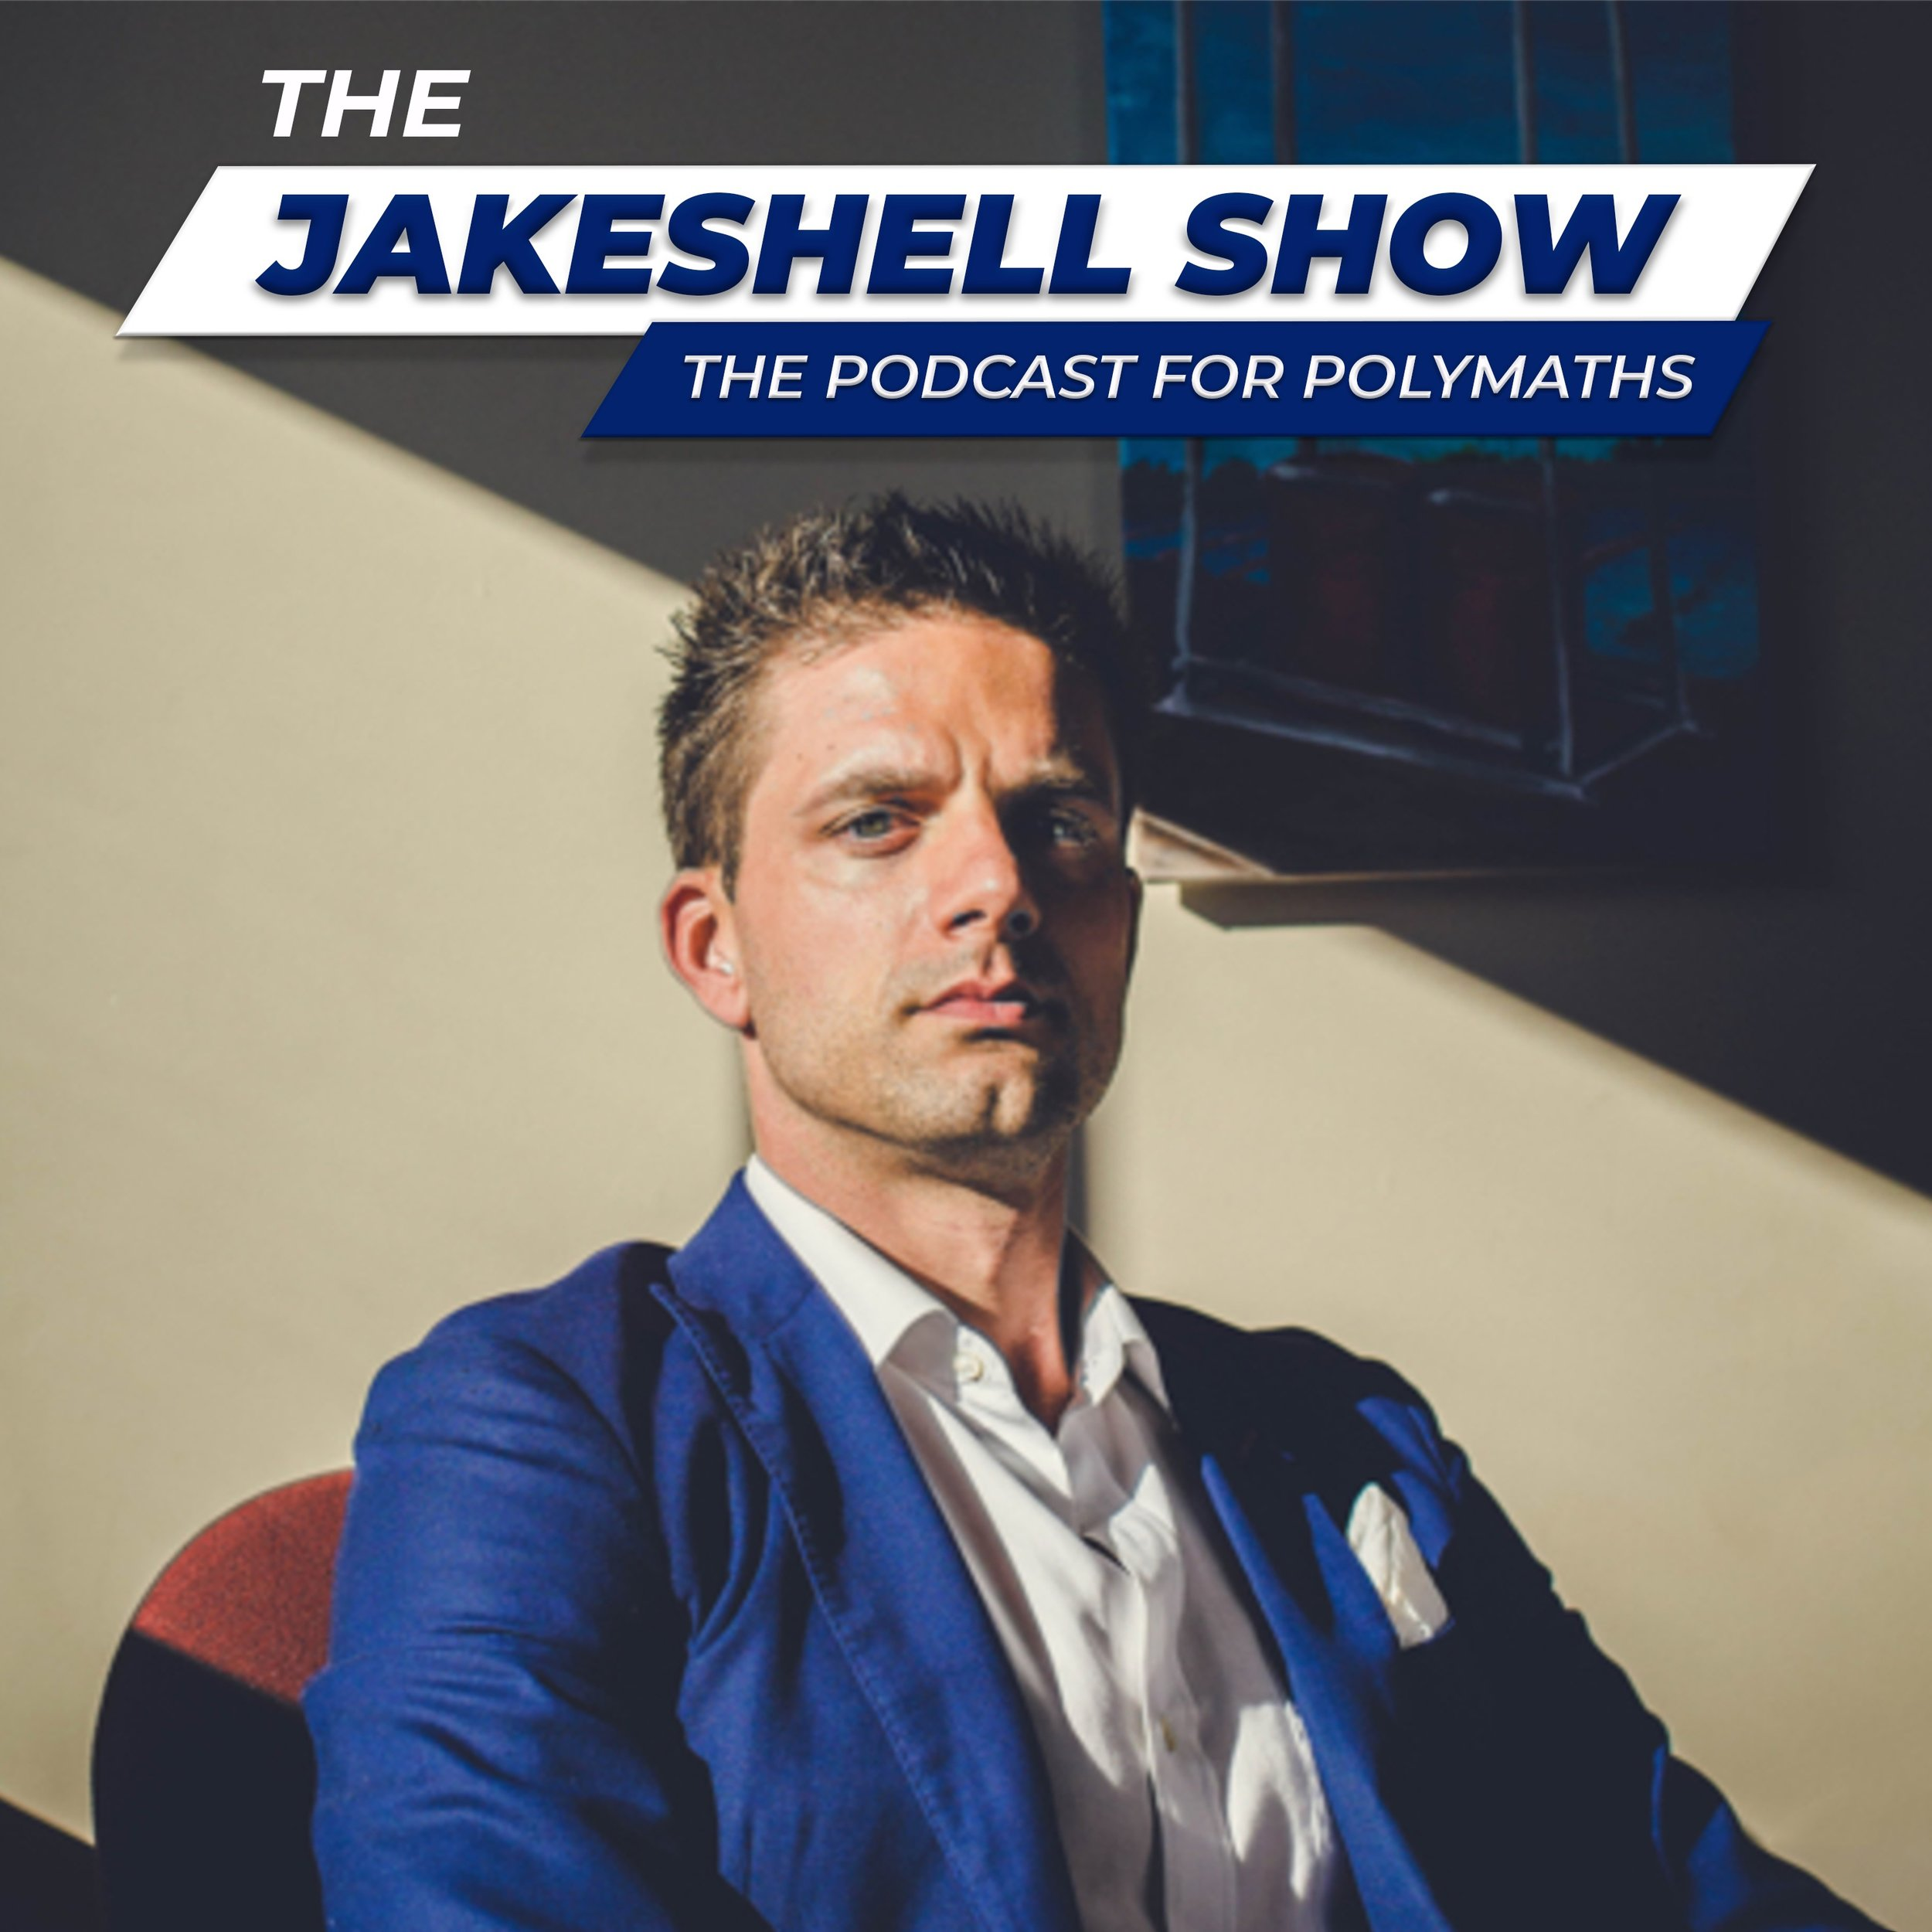 The JakeShell Show: The Podcast for Polymaths